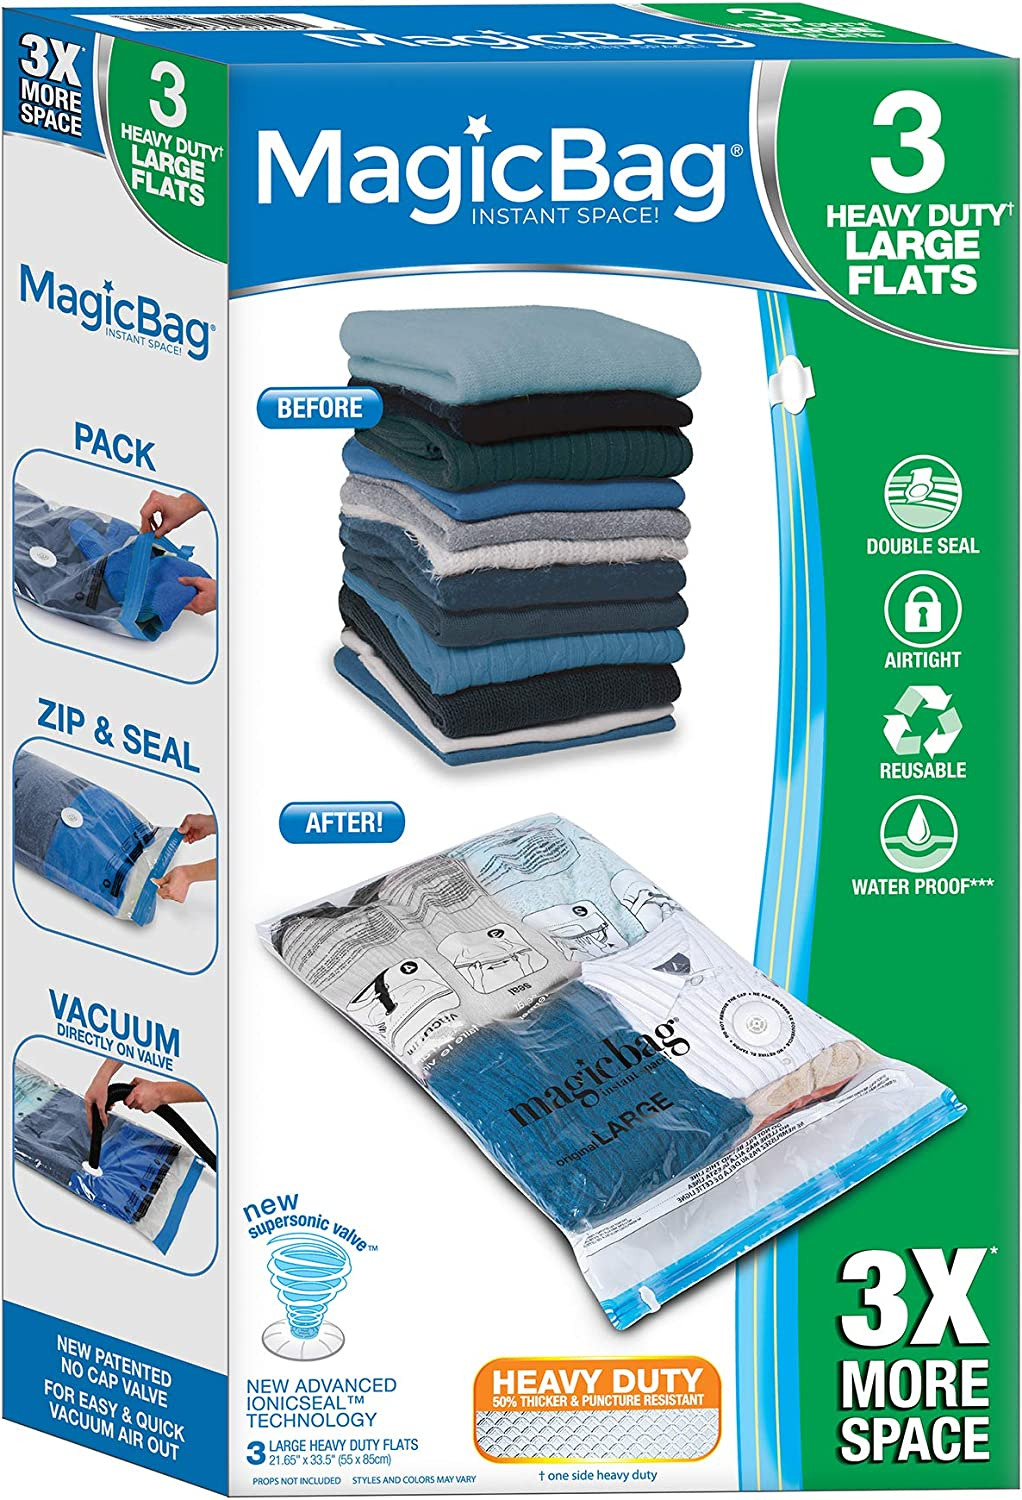 Smart Design MagicBag Instant Space Saver Storage - Flat Heavy Duty Large - Airtight Double Zipper - Vacuum Seal - Clothing, Pillows - Home Organization - (3 Bags)